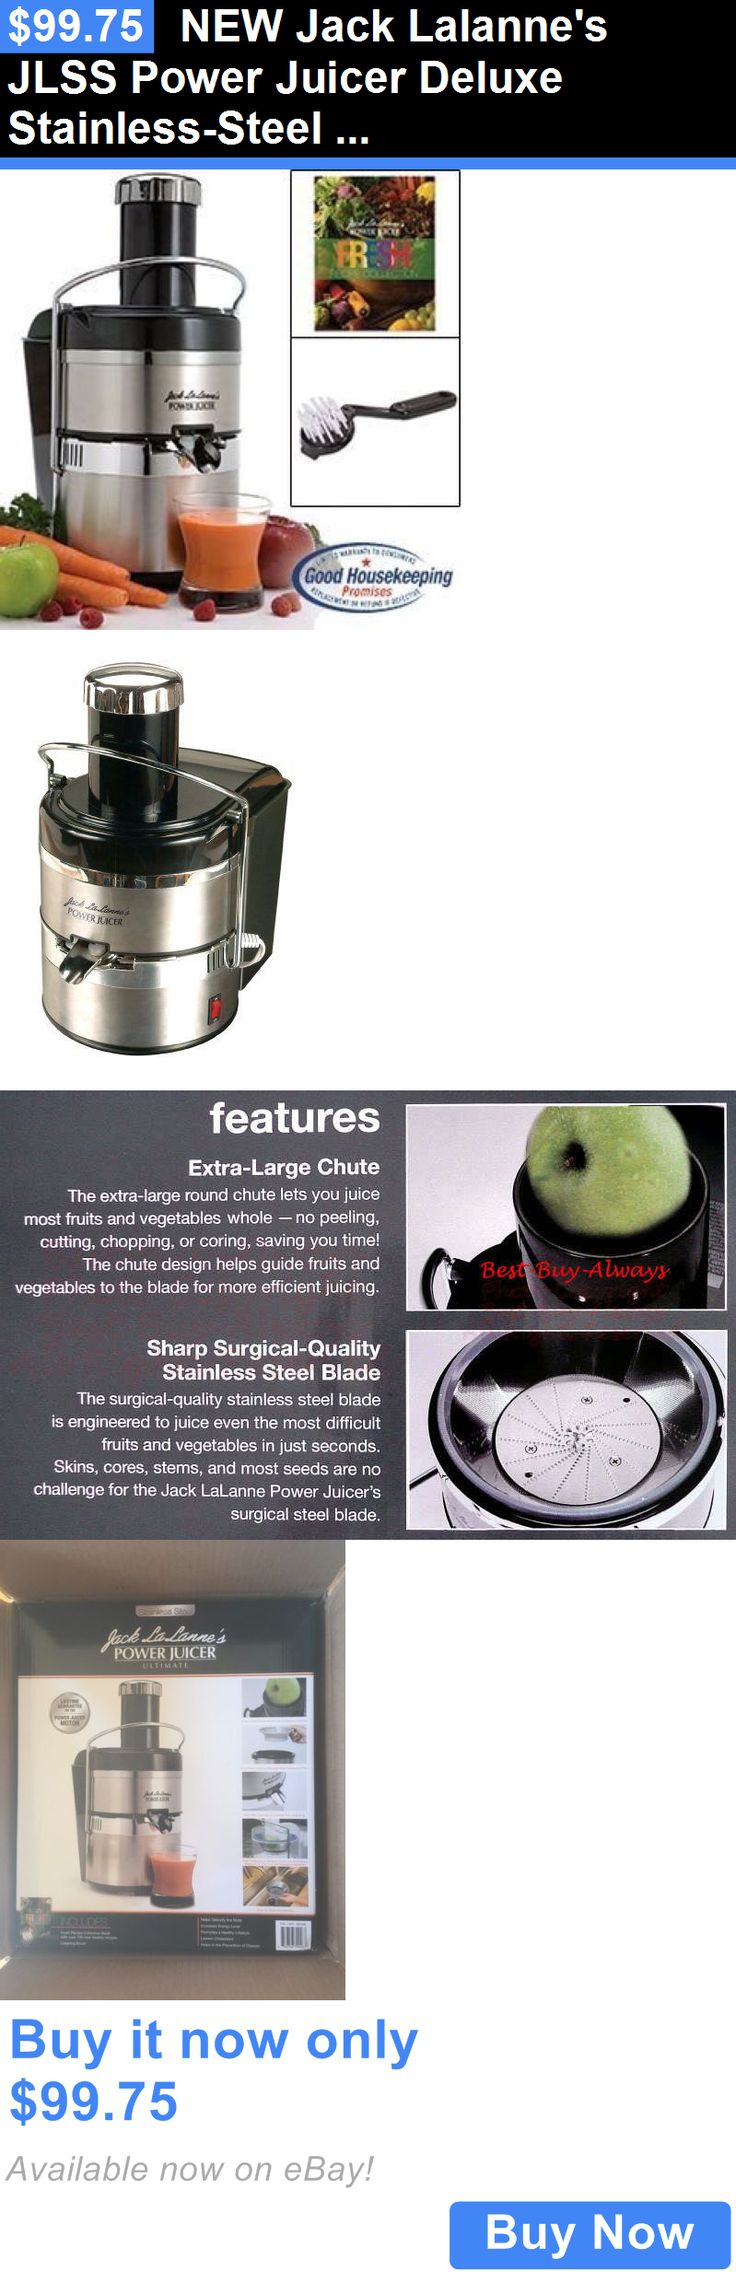 appliances: New Jack Lalannes Jlss Power Juicer Deluxe Stainless-Steel Electric Juicer BUY IT NOW ONLY: $99.75